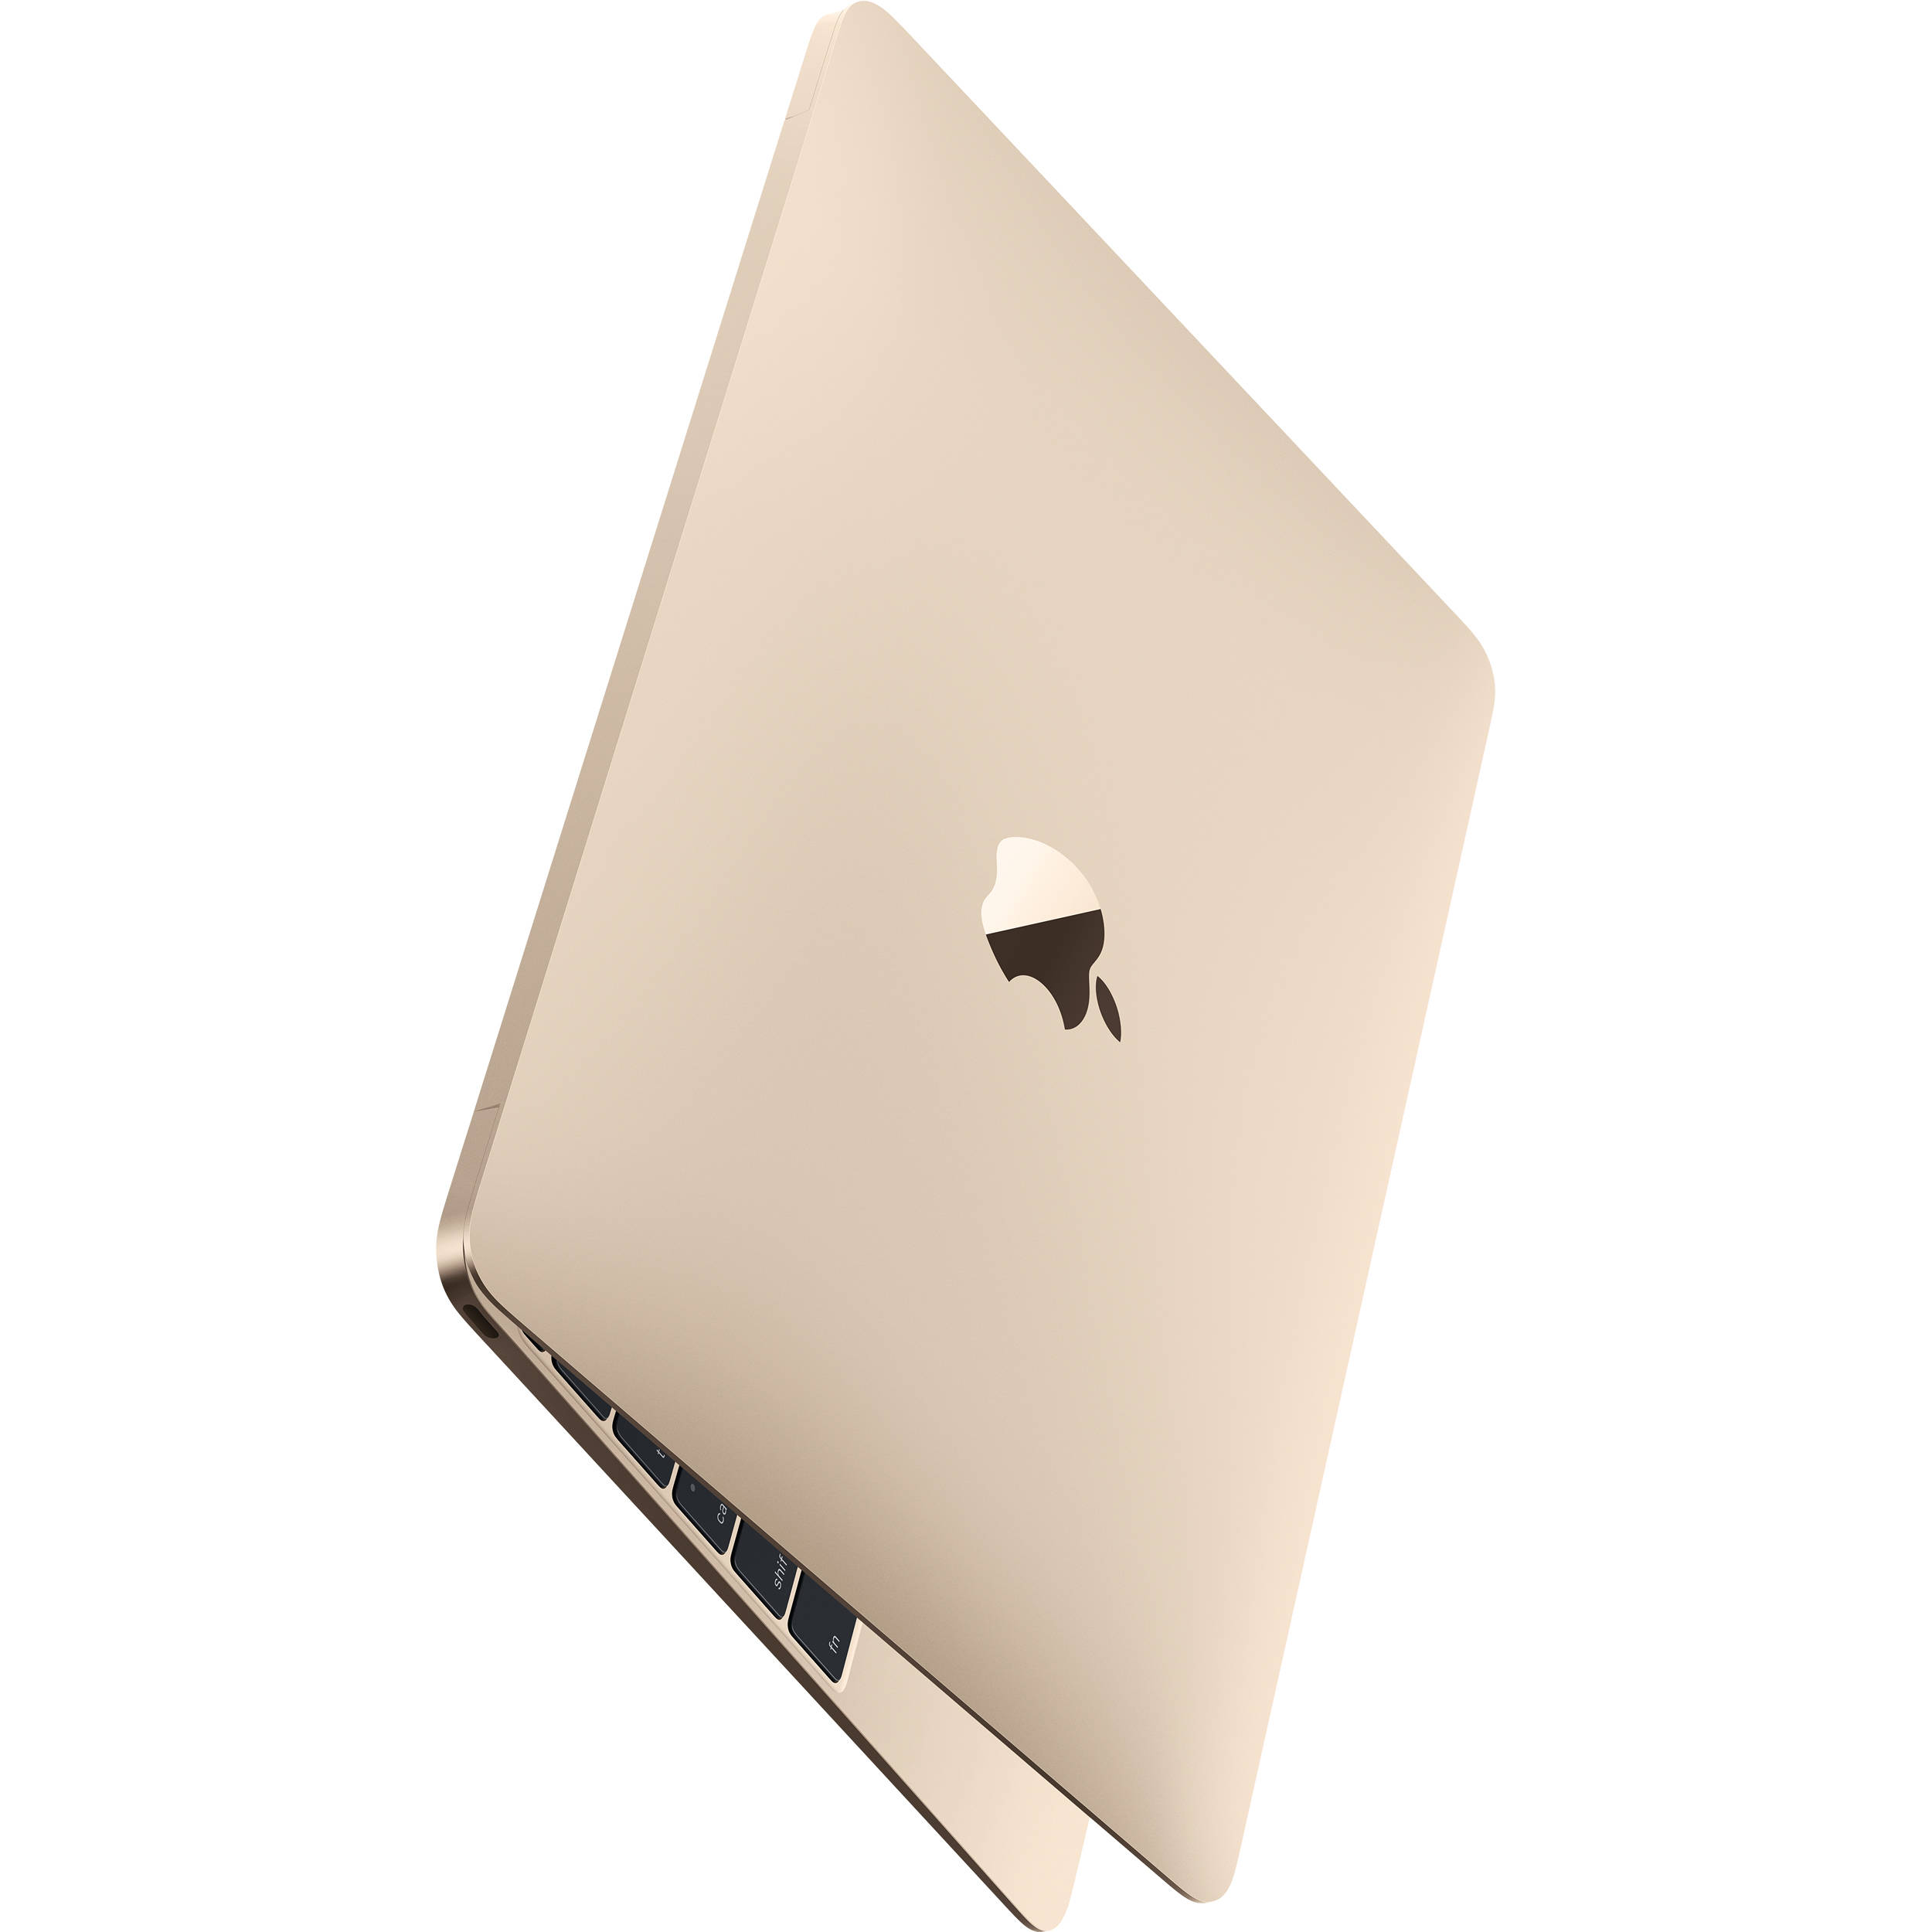 Apple 12 Quot Macbook Early 2016 Gold Z0ss Mlhf21 Bh B Amp H